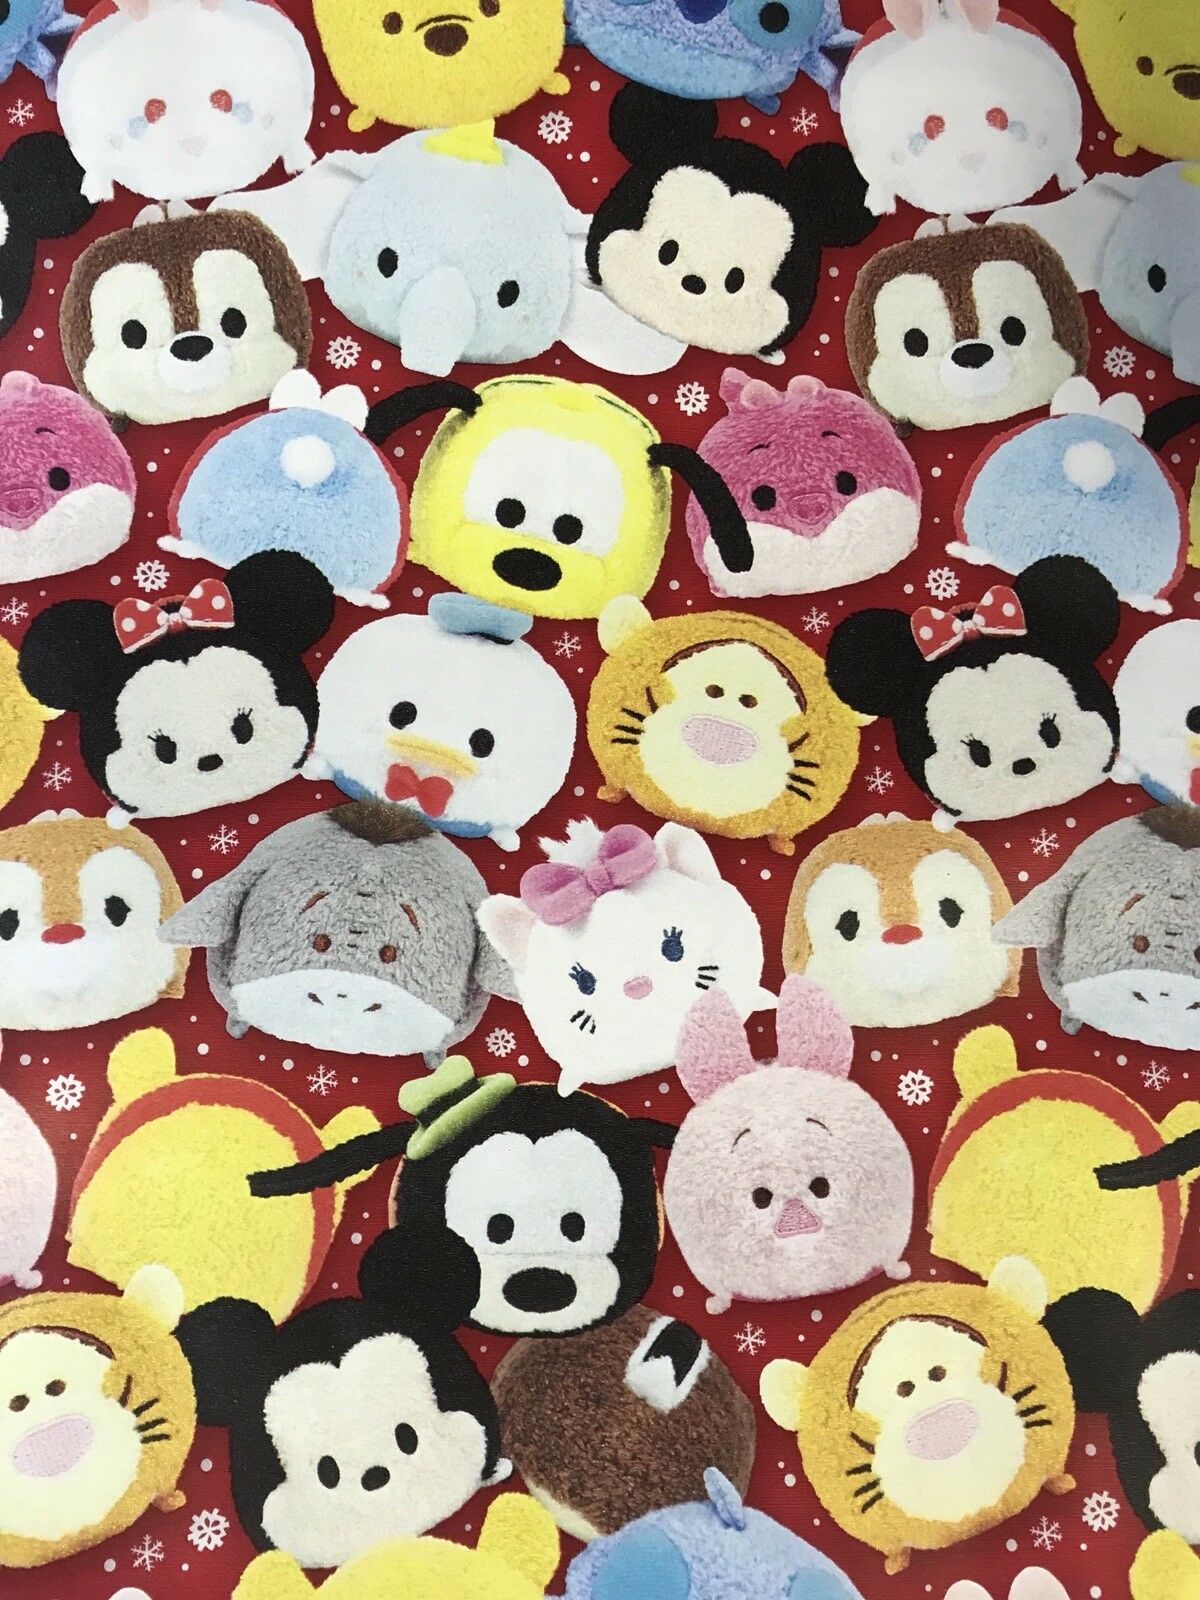 DISNEY TSUM TSUM Christmas Gift Wrapping Paper 60 sq ft roll wrap ...